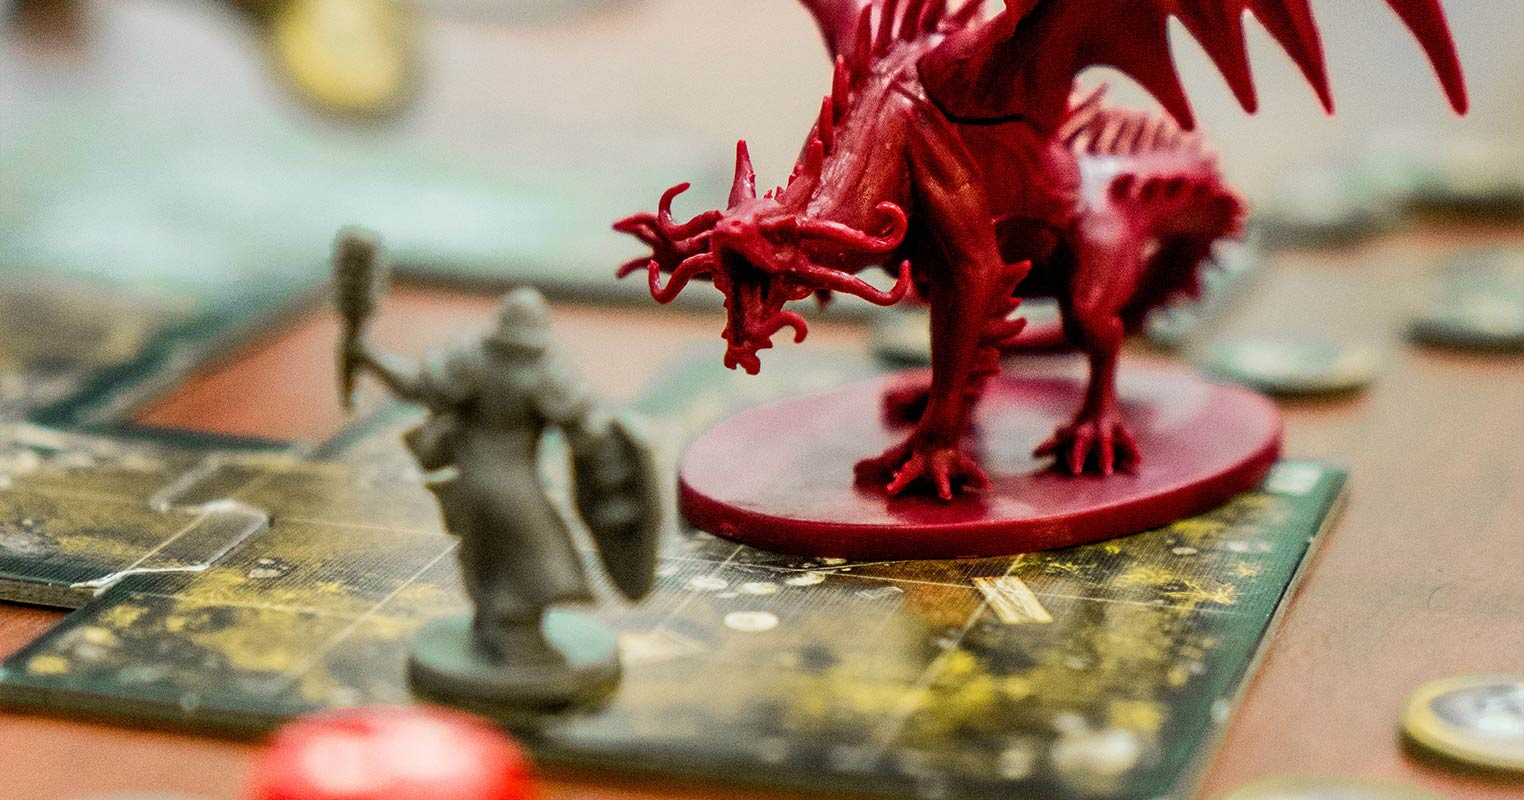 Tabletop RPG miniatures in a combat encounter. Photo by Clint Bustrillos.